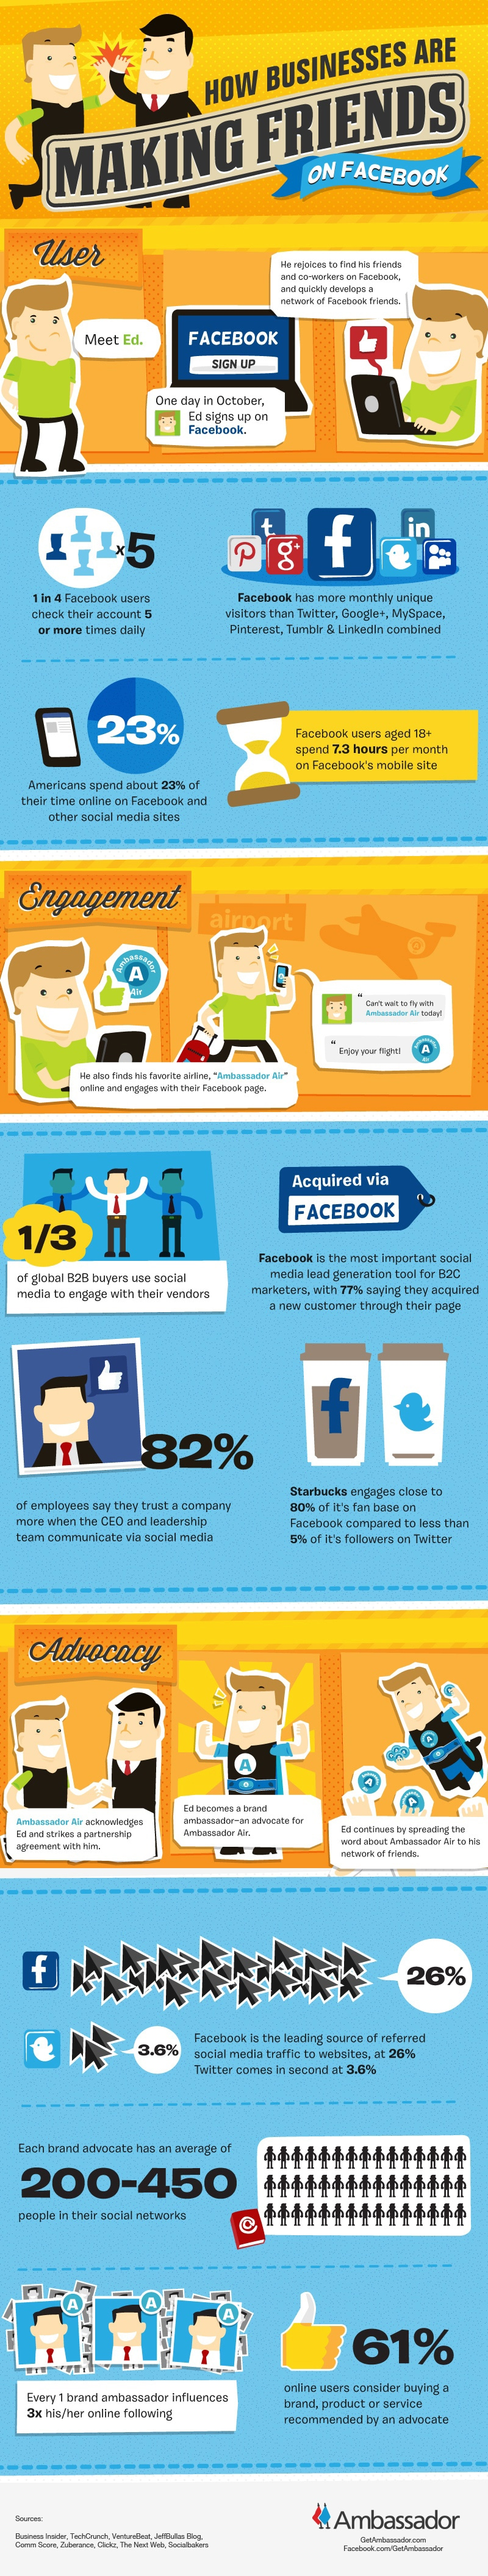 making-more-friends-facebook-infographic